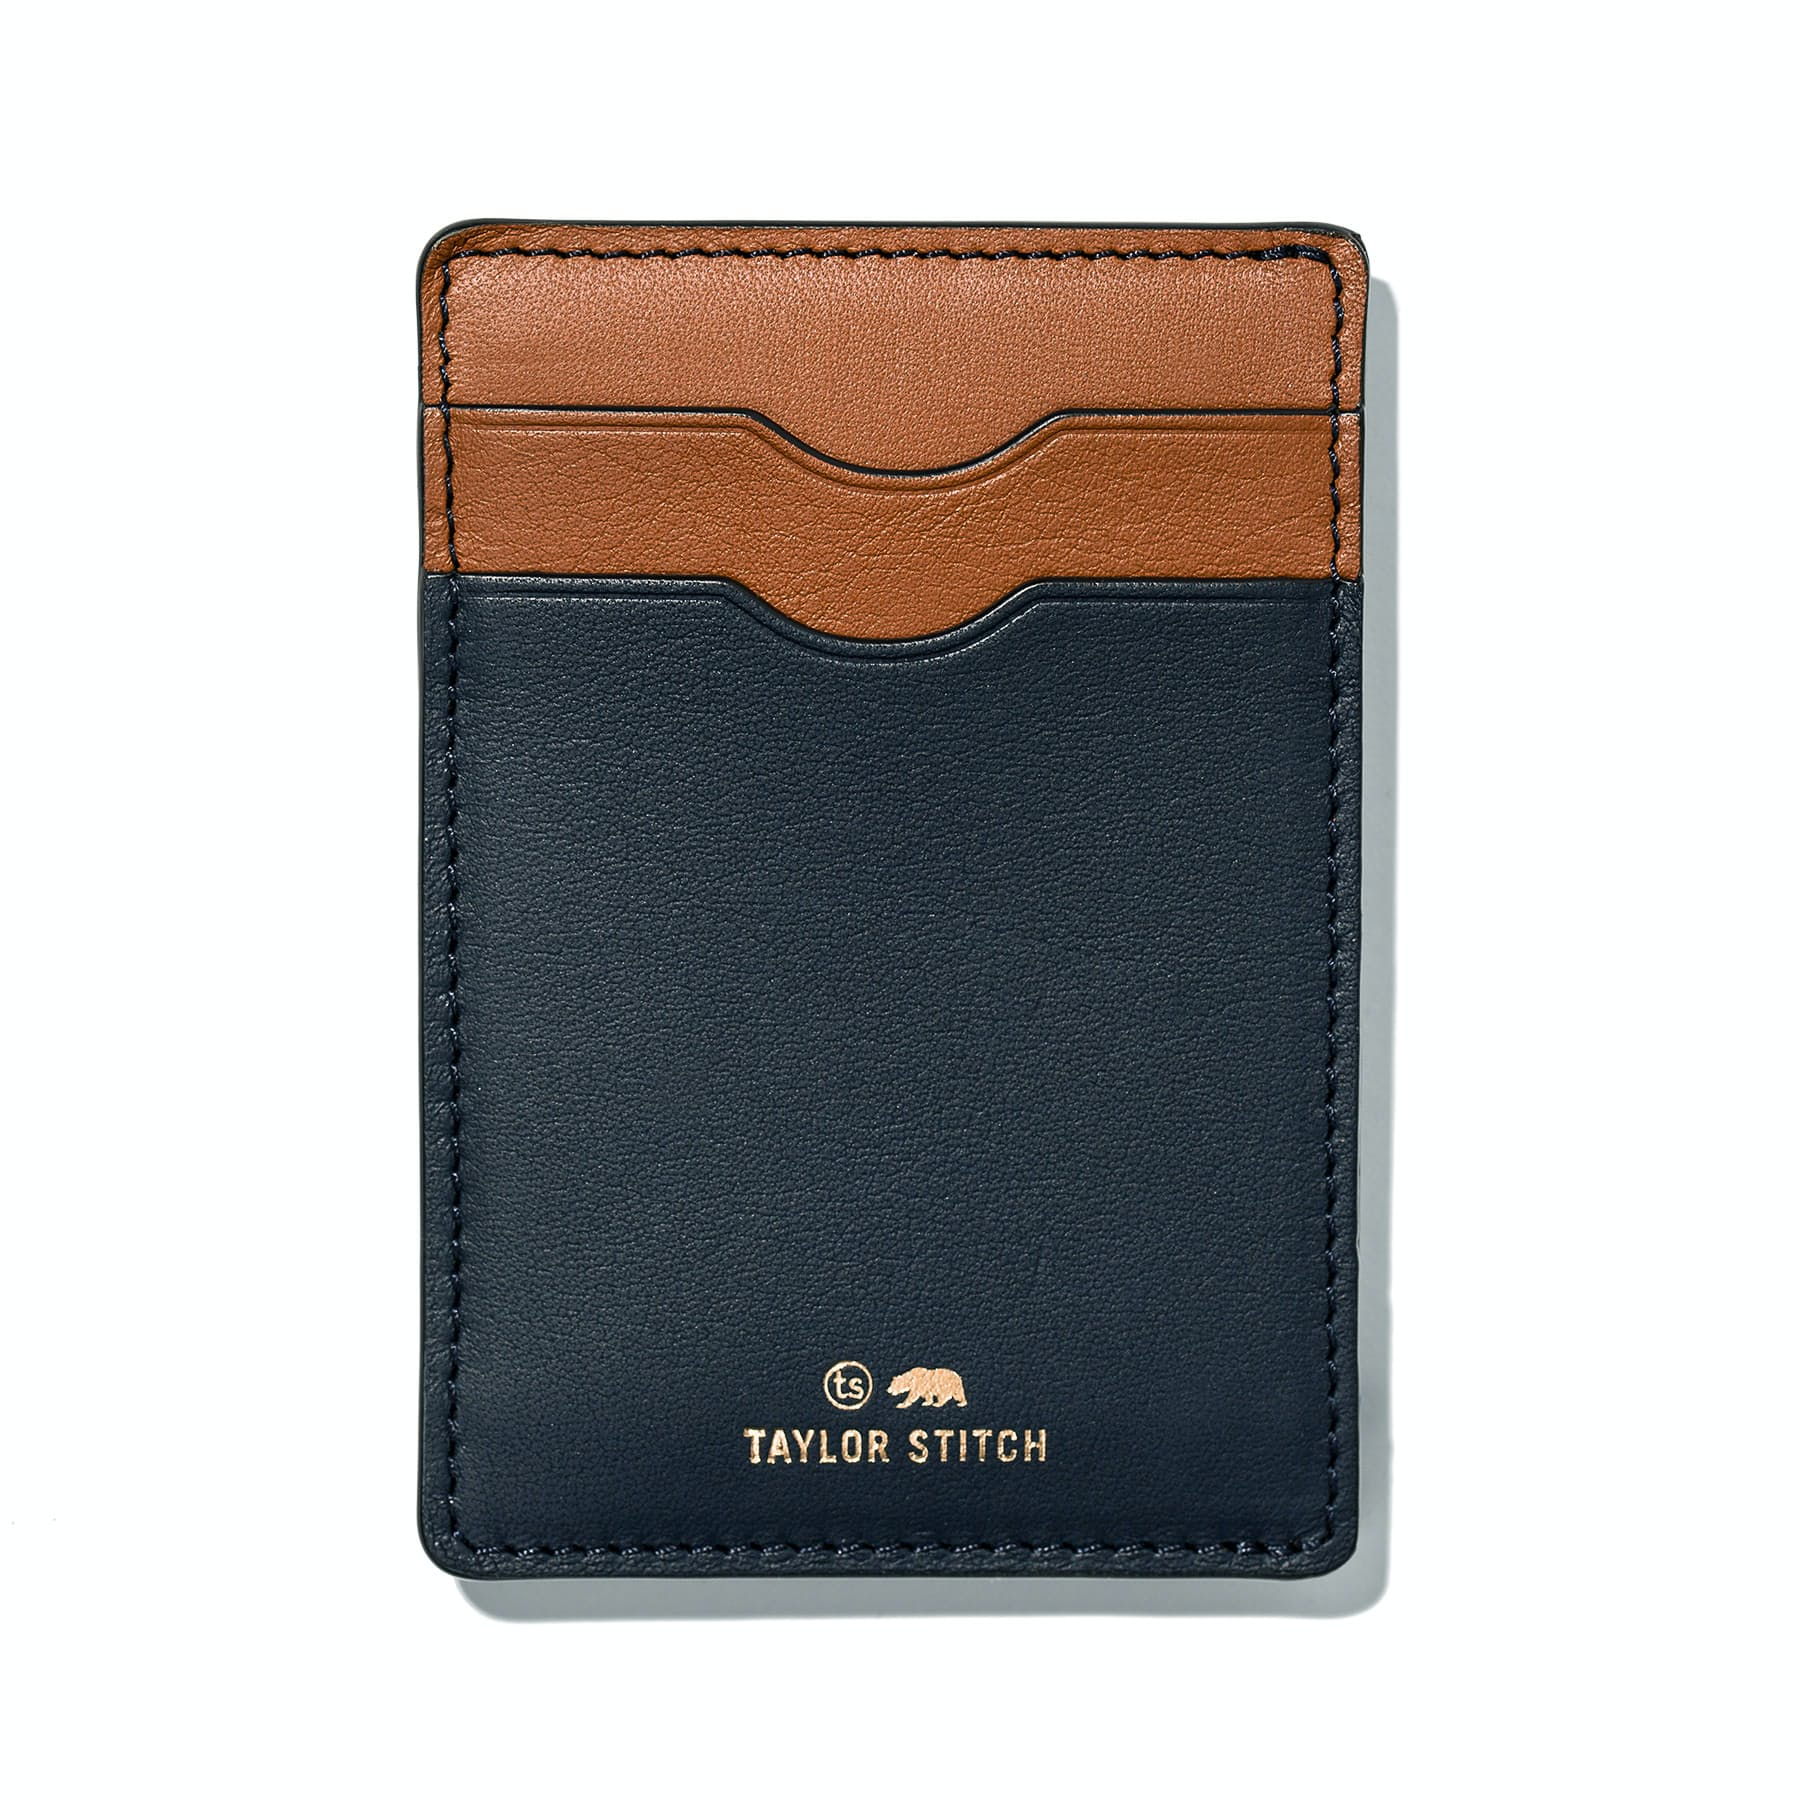 88z4onryqp taylor stitch the minimalist wallet 0 original